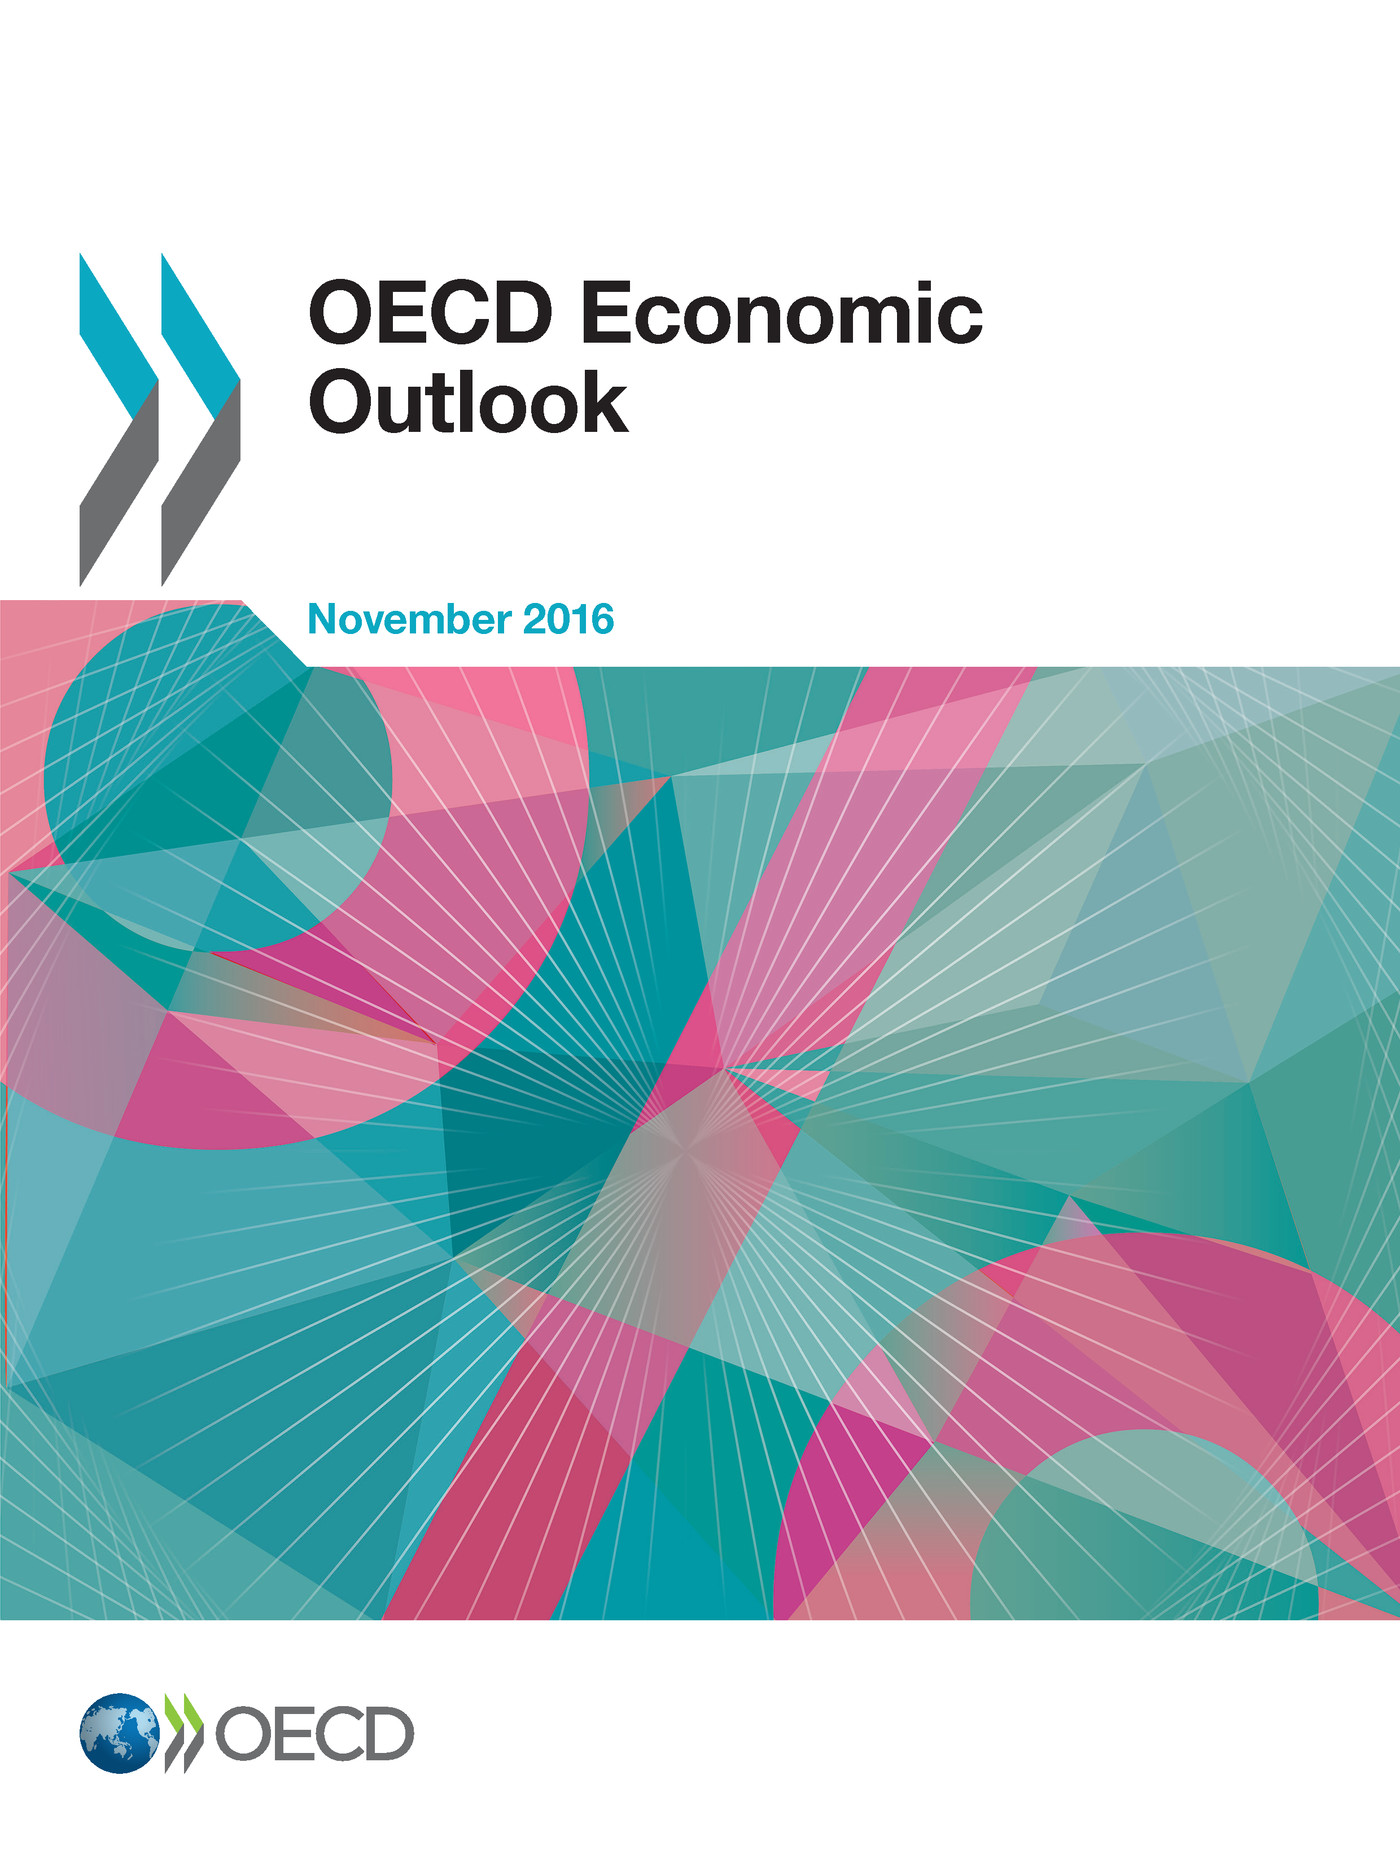 OECD Economic Outlook, Volume 2016 Issue 2